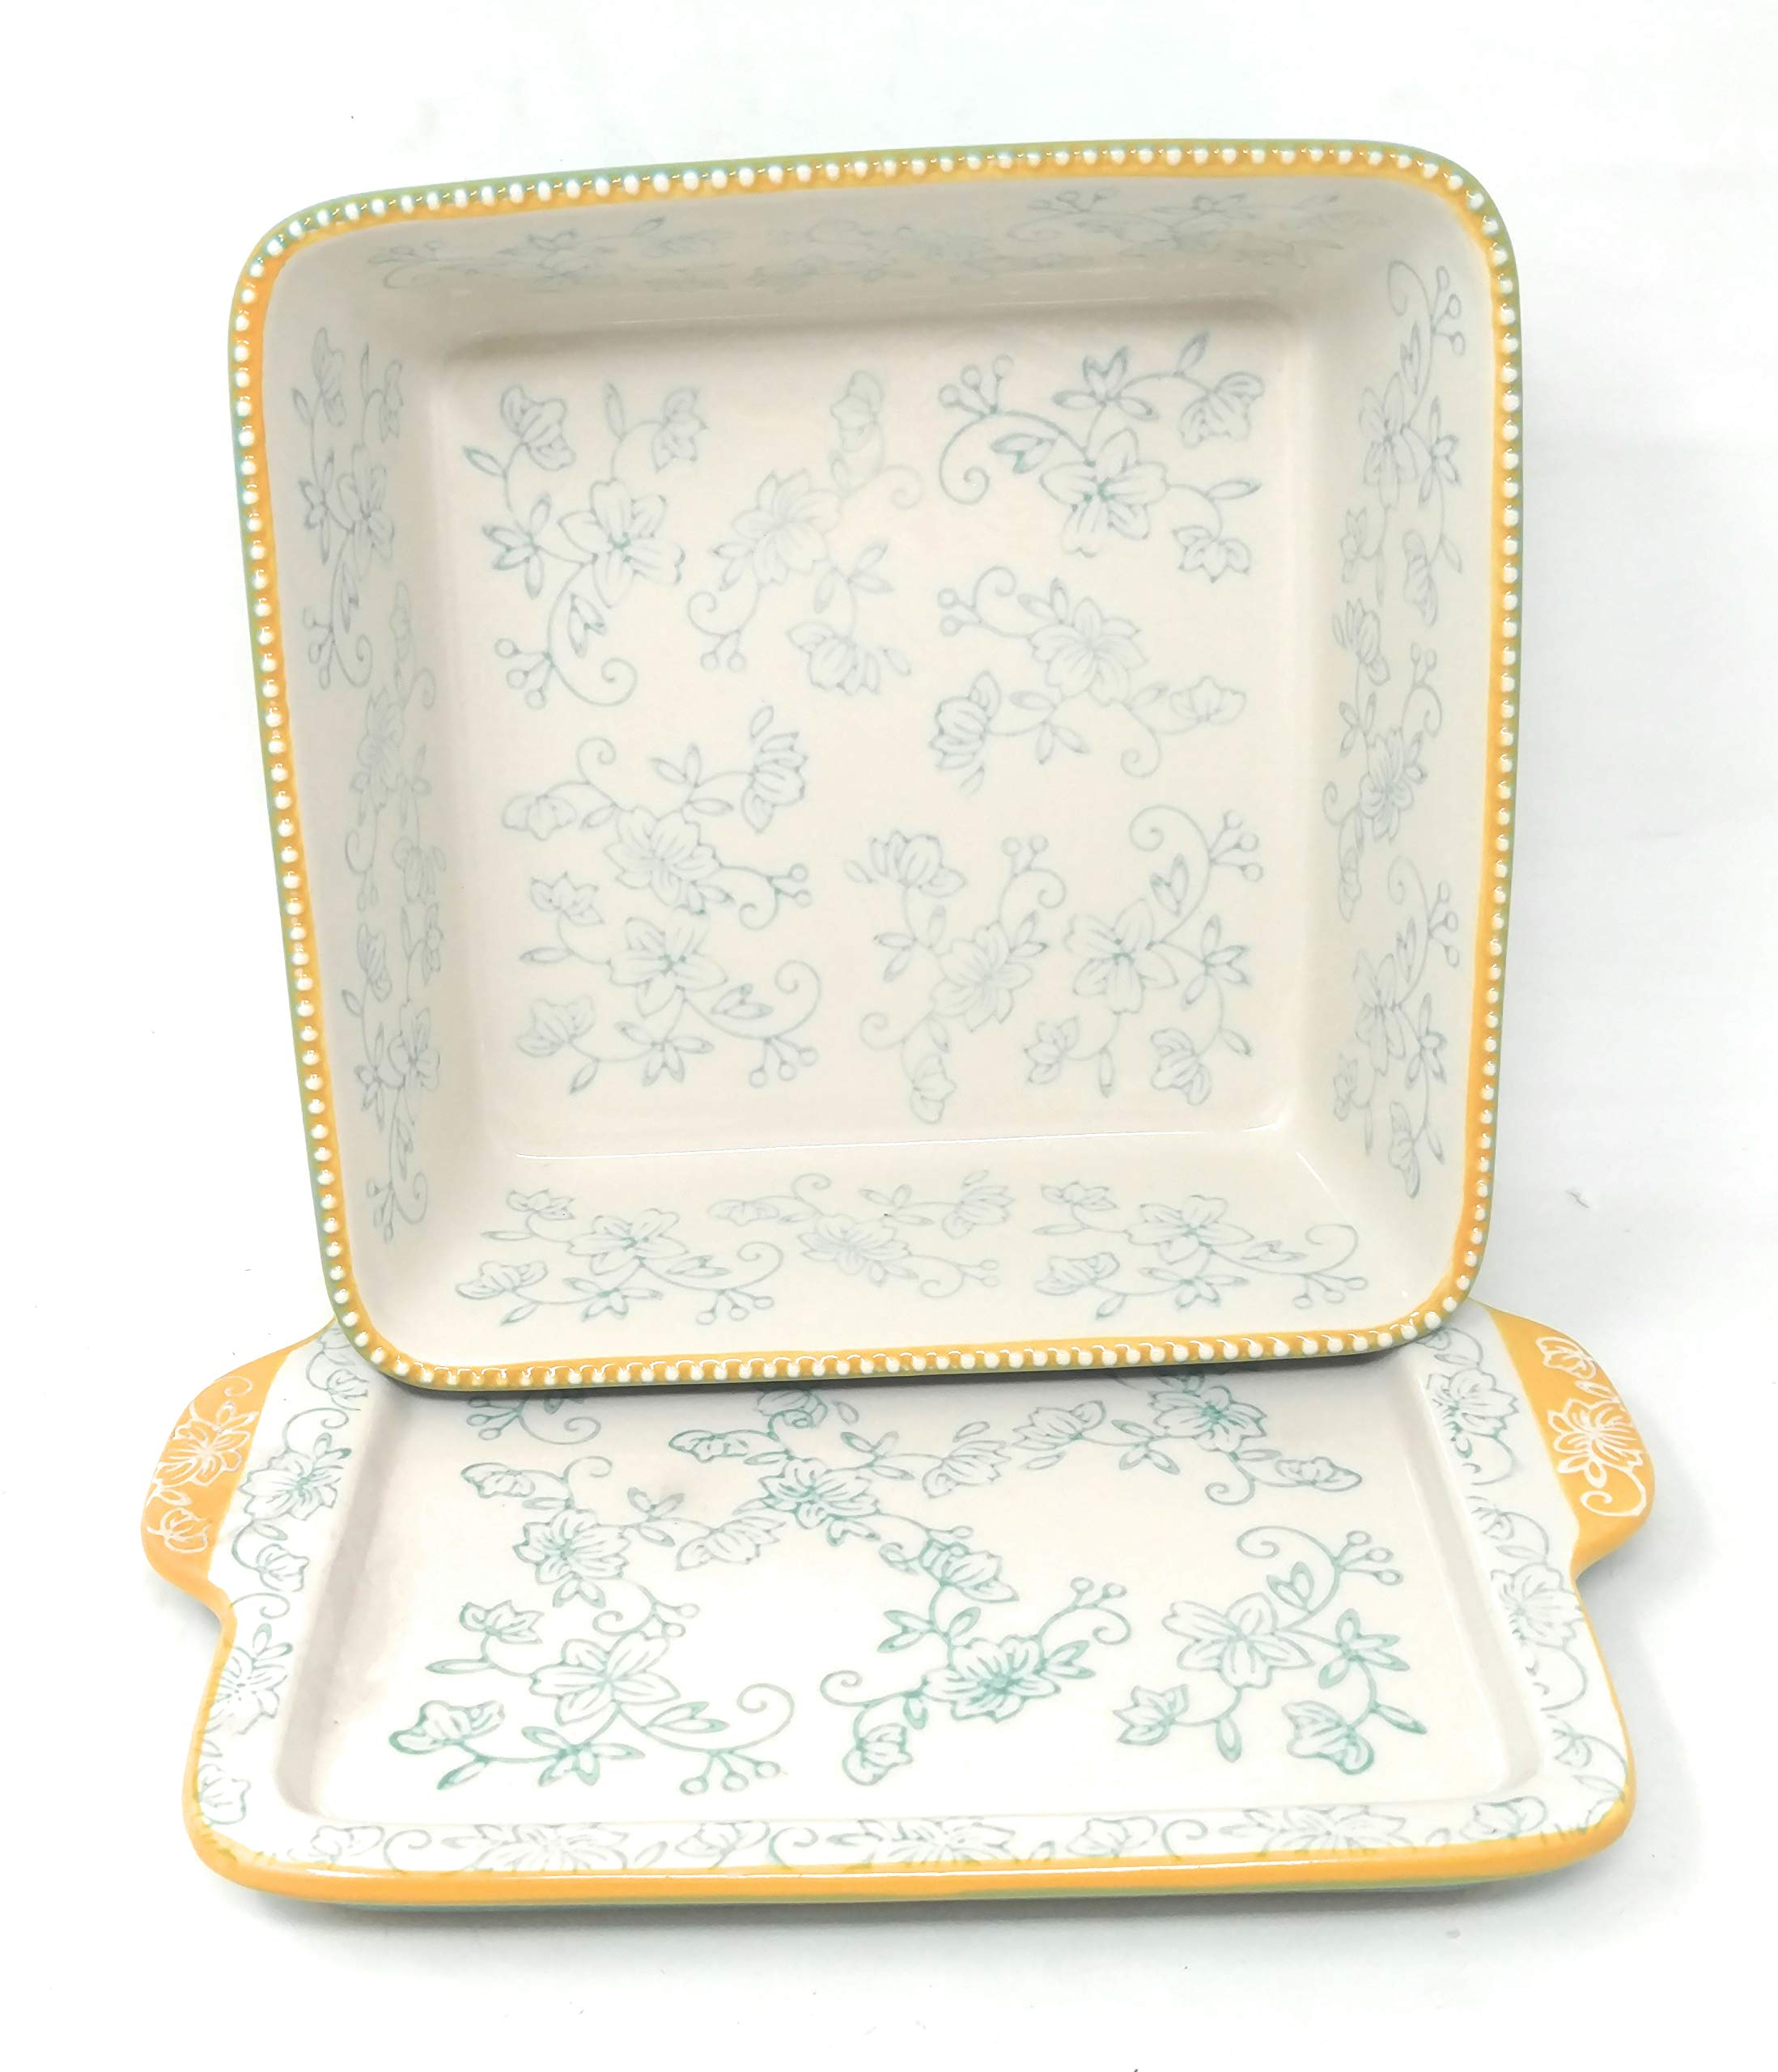 Temp-tations 8x8 Brownie Baker w/Lid-It (Tray) 1.5 Qt Square Casserole Dish (Floral Lace Teal) by Temptations (Image #2)